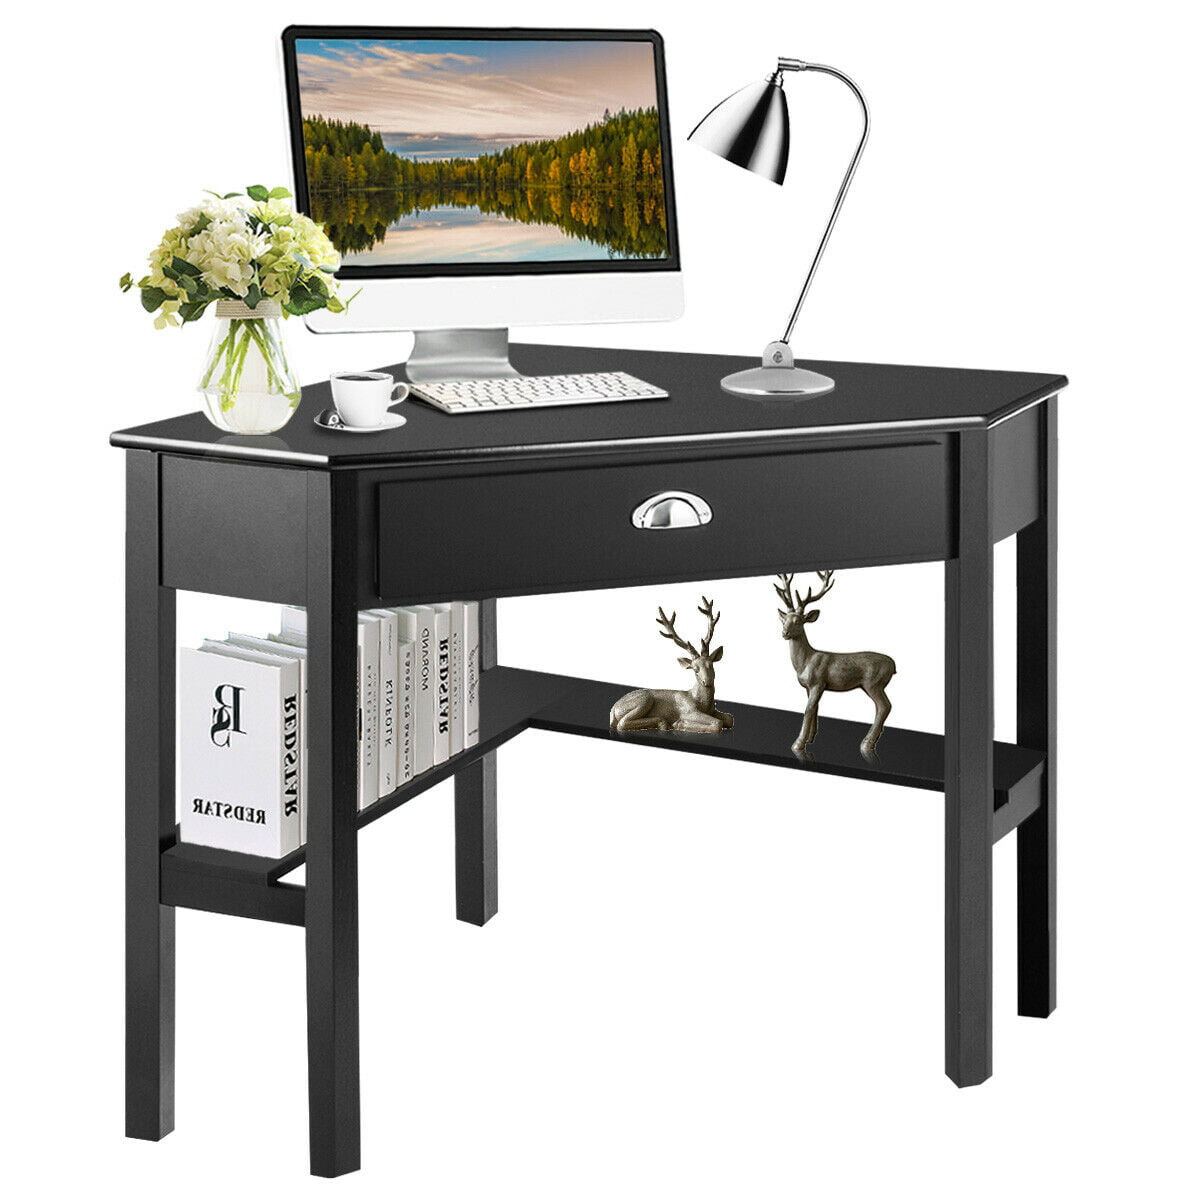 Costway Corner Computer Desk Laptop Writing Table Wood Workstation Home Office Furniture Walmart Com Walmart Com